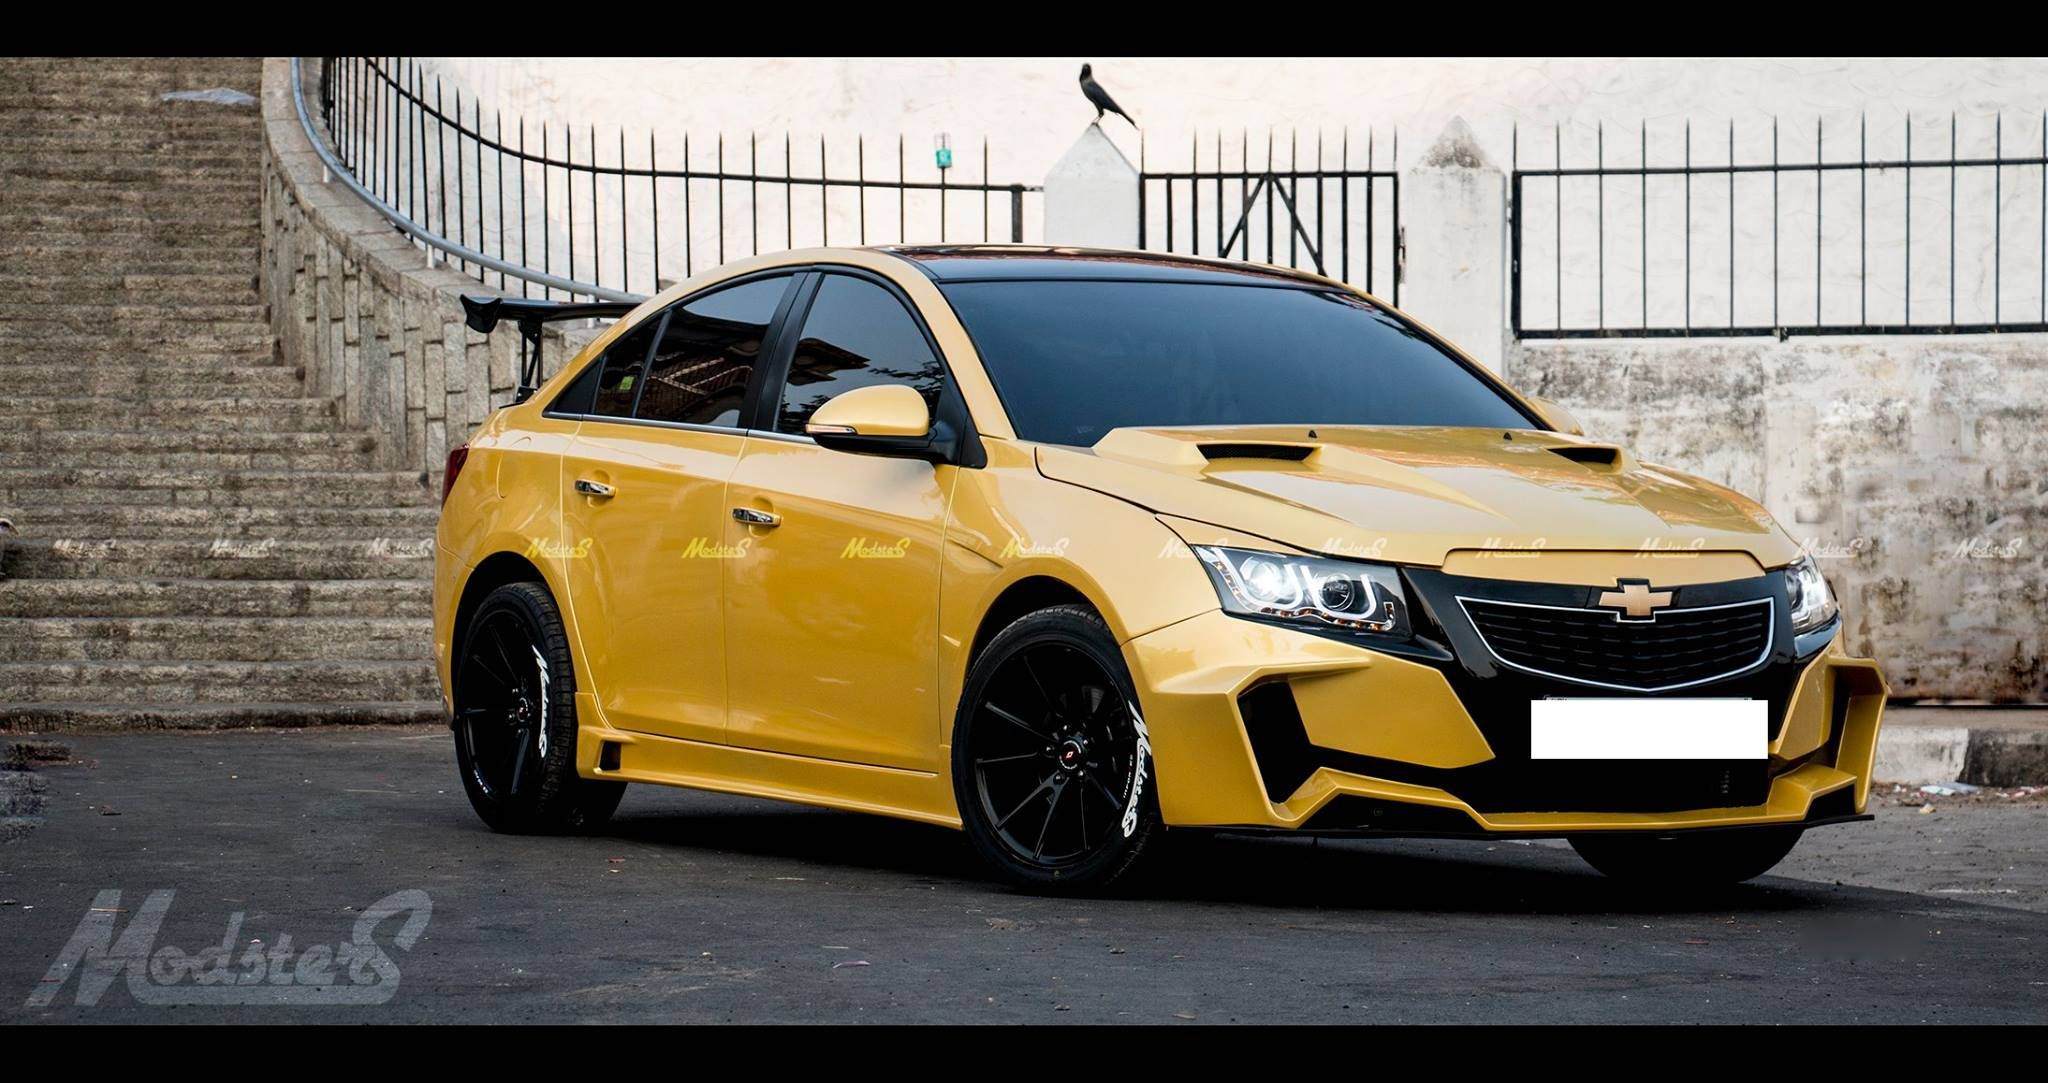 Chevrolet Cruze Project Yellow Transformer In Images Chevy